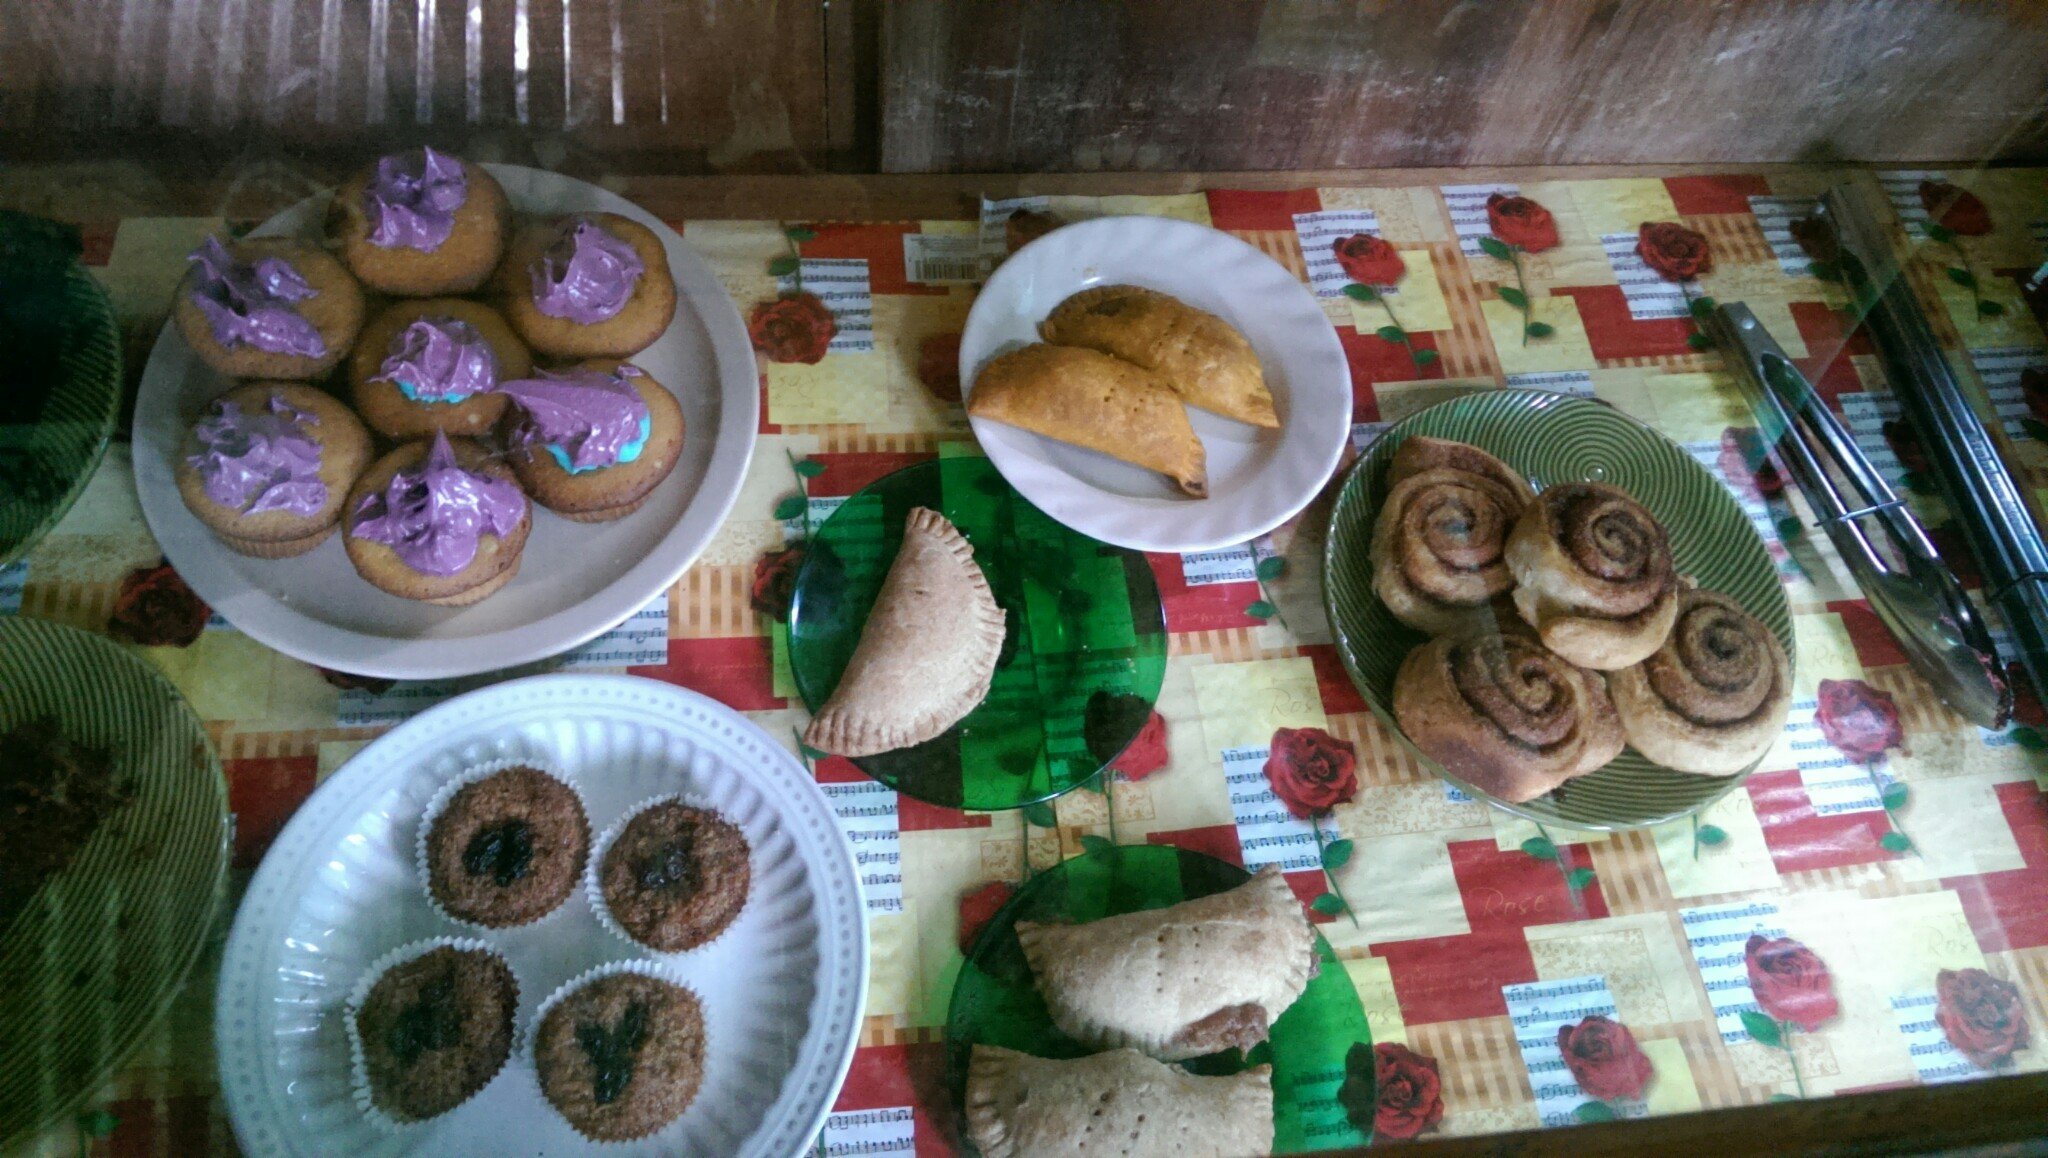 Pan De Coco and other treats from a home run bakery, Big Corn Island